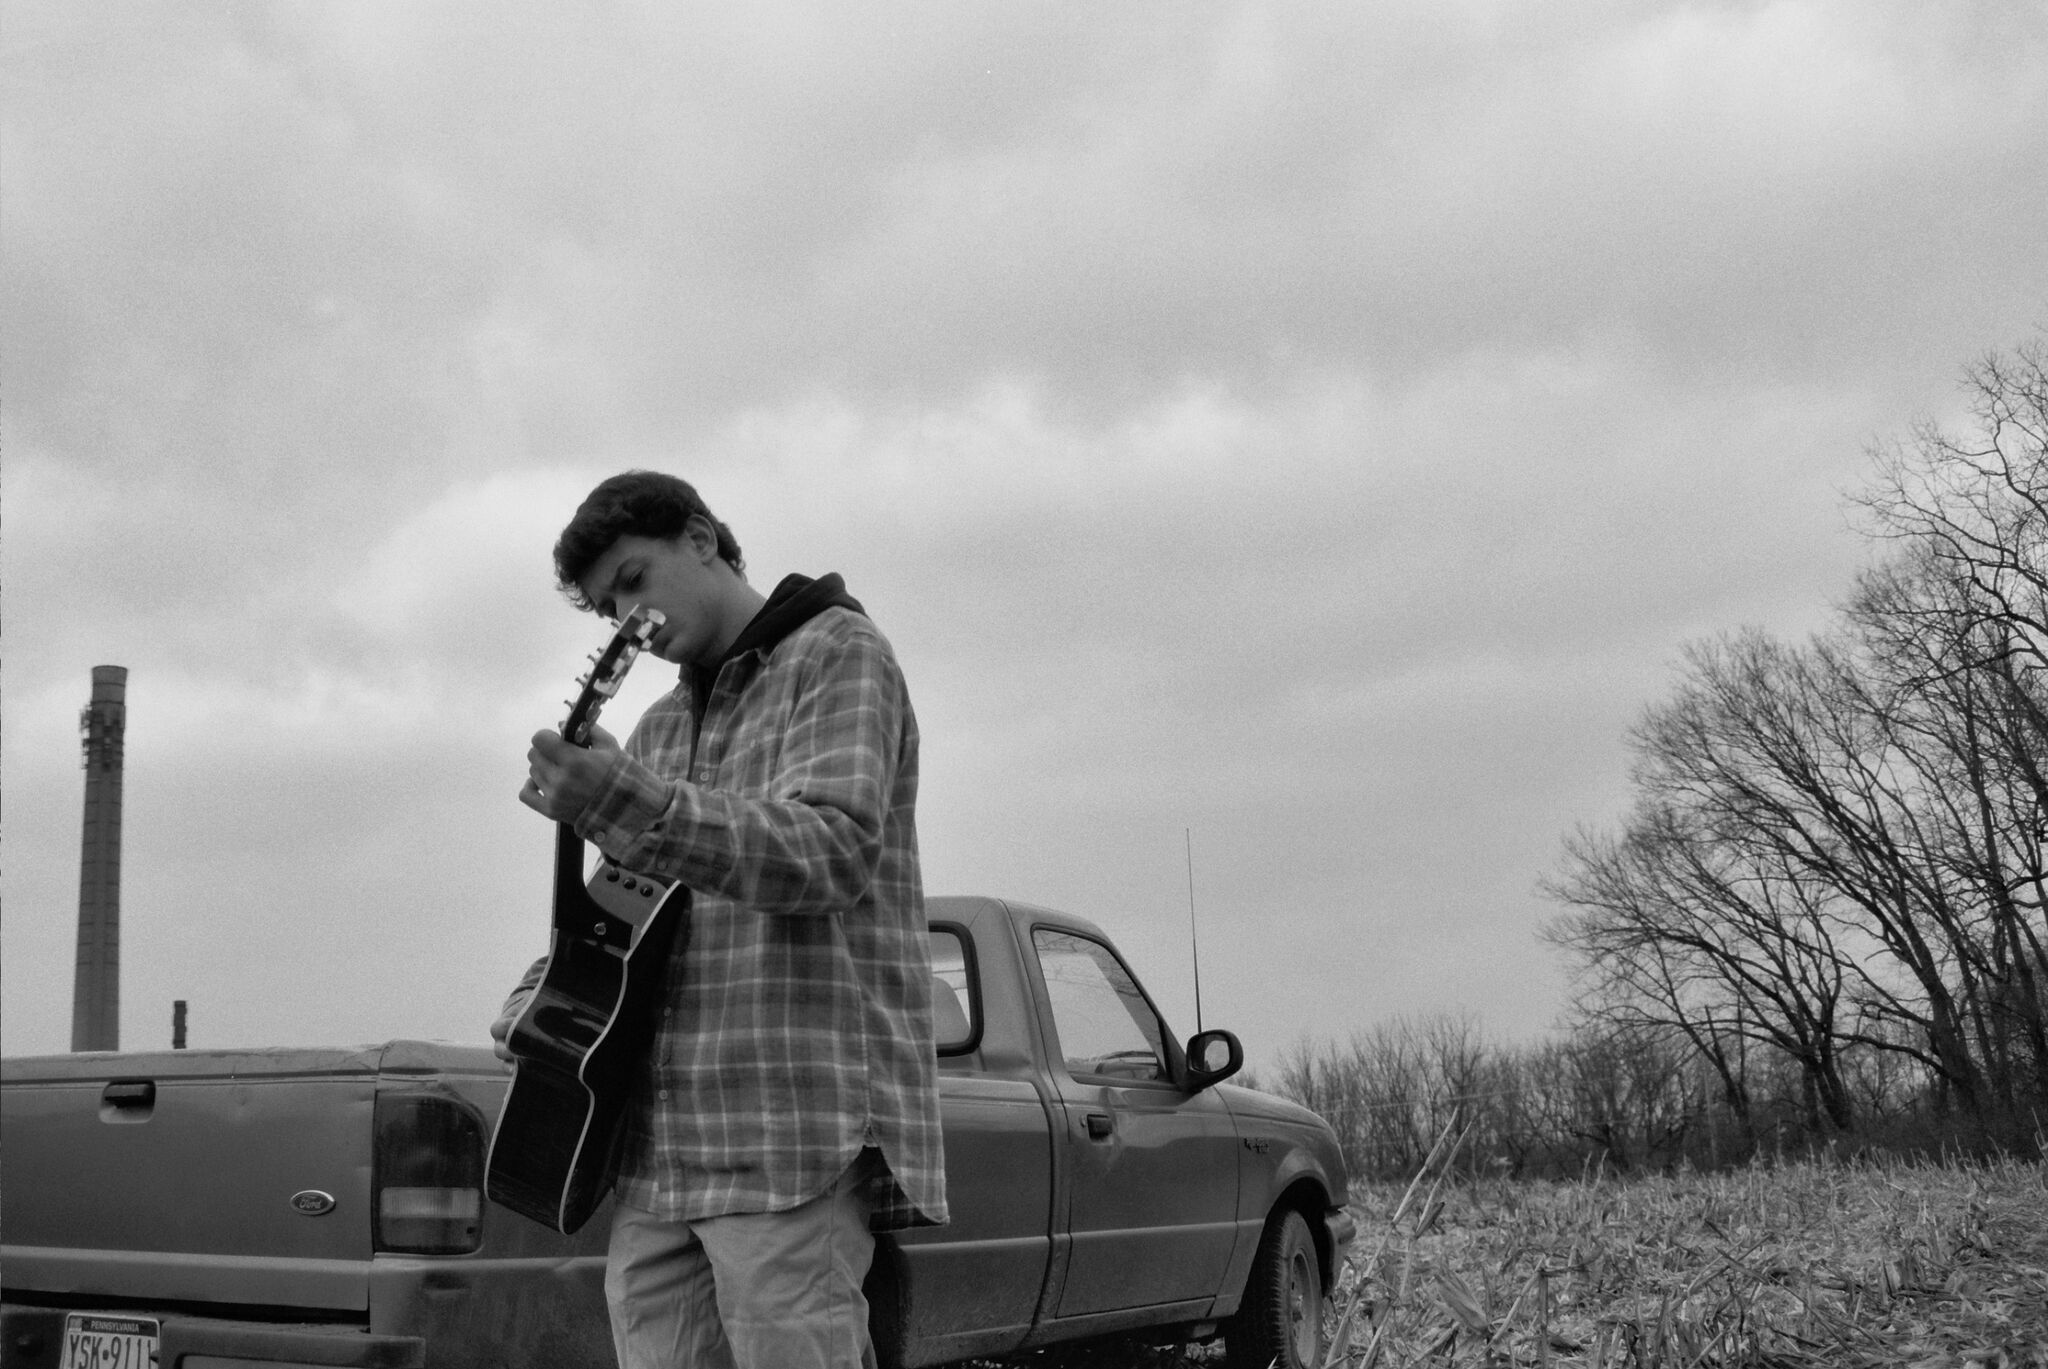 """Holden Miller - Holden Miller is a singer-songwriter from Long Island, New York. After releasing his debut single """"Pennsylvania"""" in January 2019, Holden has tallied over 95,000 streams and counting. He released his second single, """"Flashbacks and Fun Facts"""", in May 2019 and is working on putting together his first EP."""